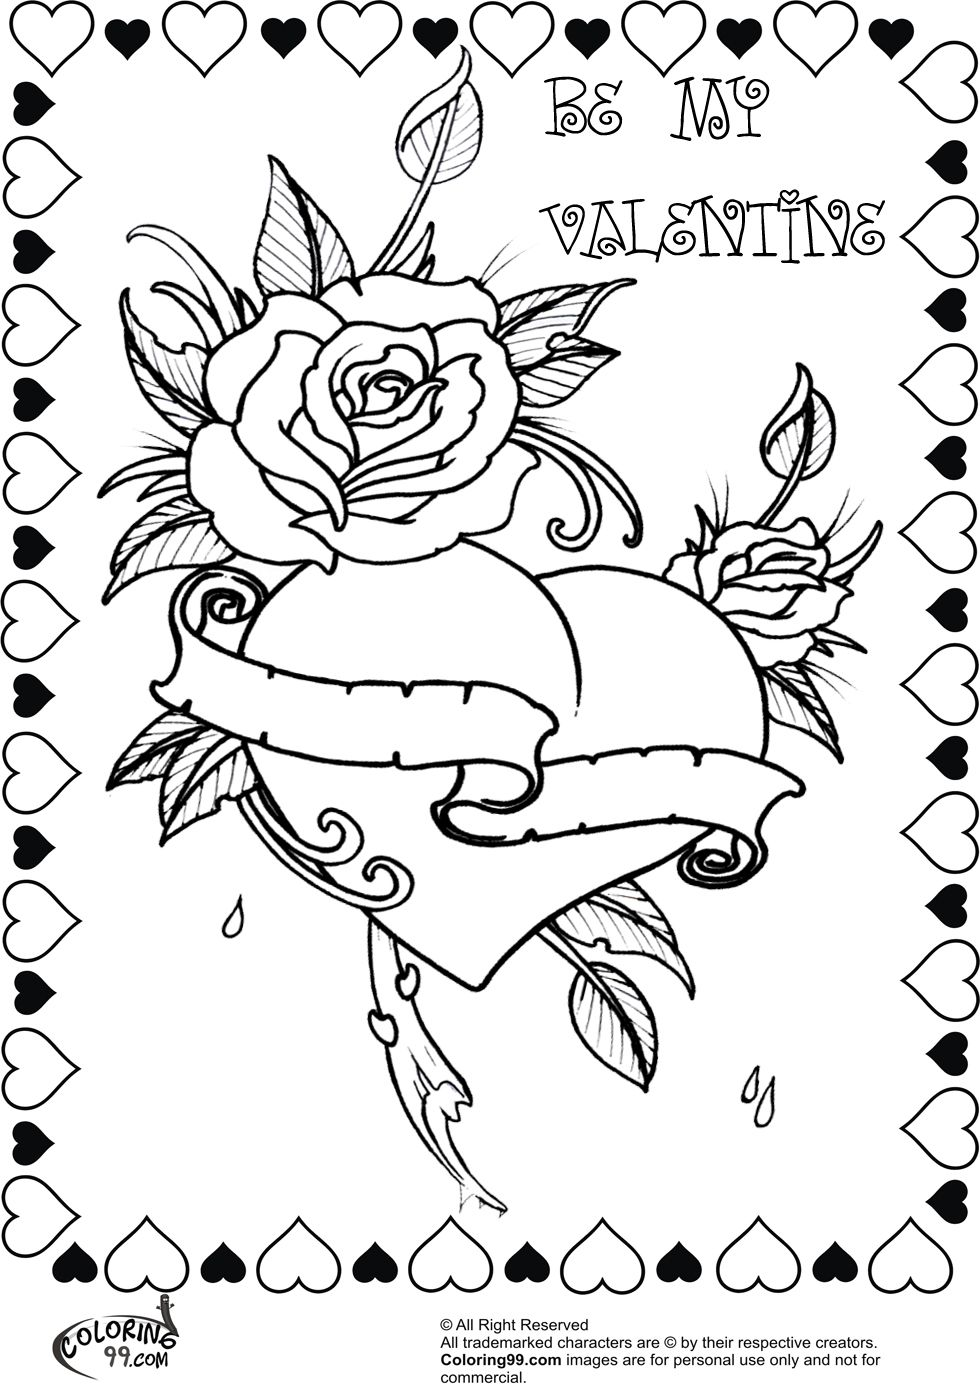 bbeautiful rose heart valentine coloring pages for adults free download - Coloring Pages Hearts Roses